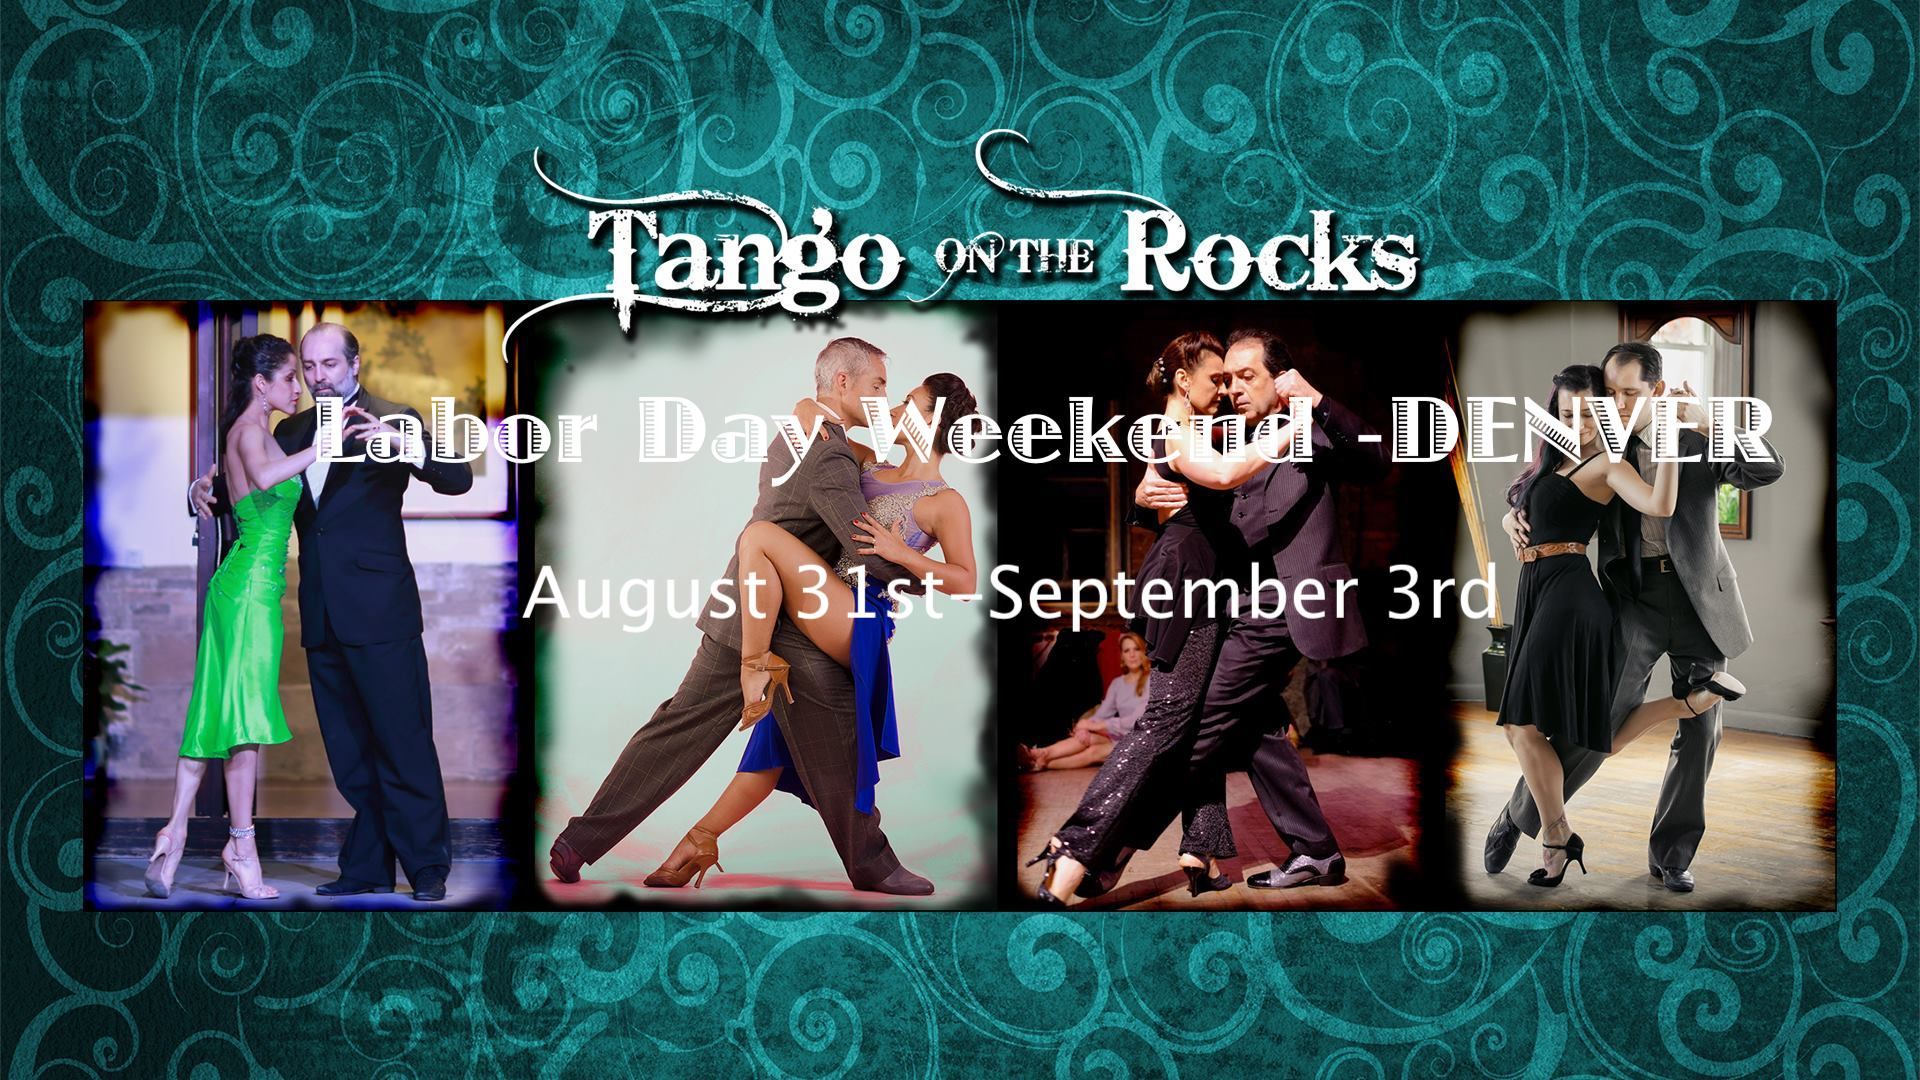 Tango On The Rocks 2018 - Home